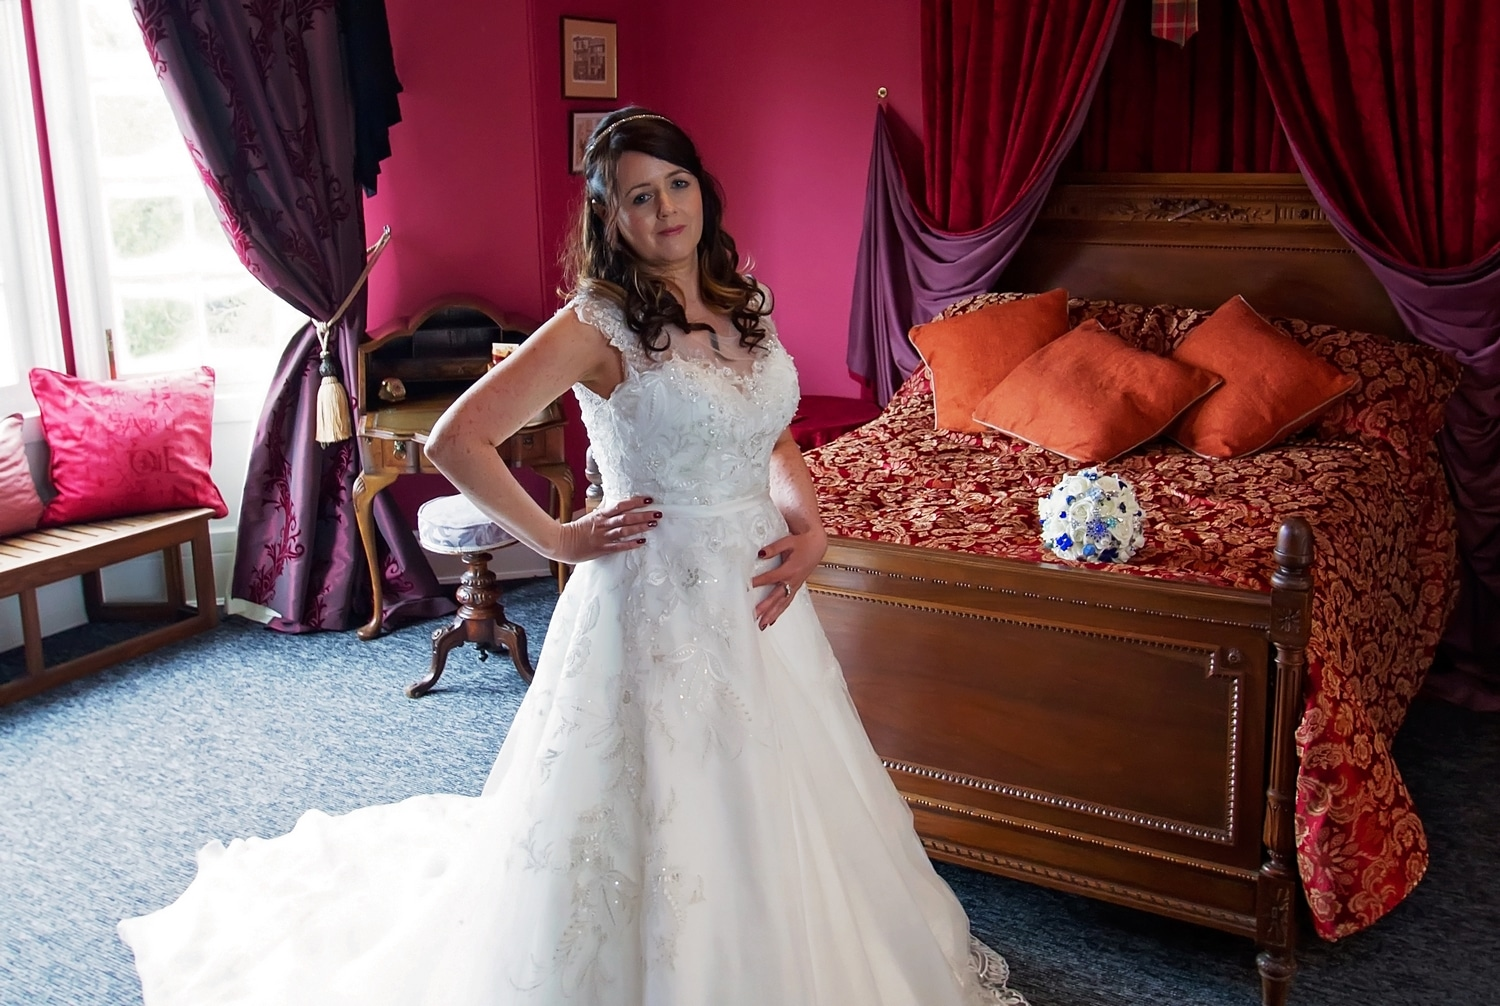 Bride stood up in wedding dress